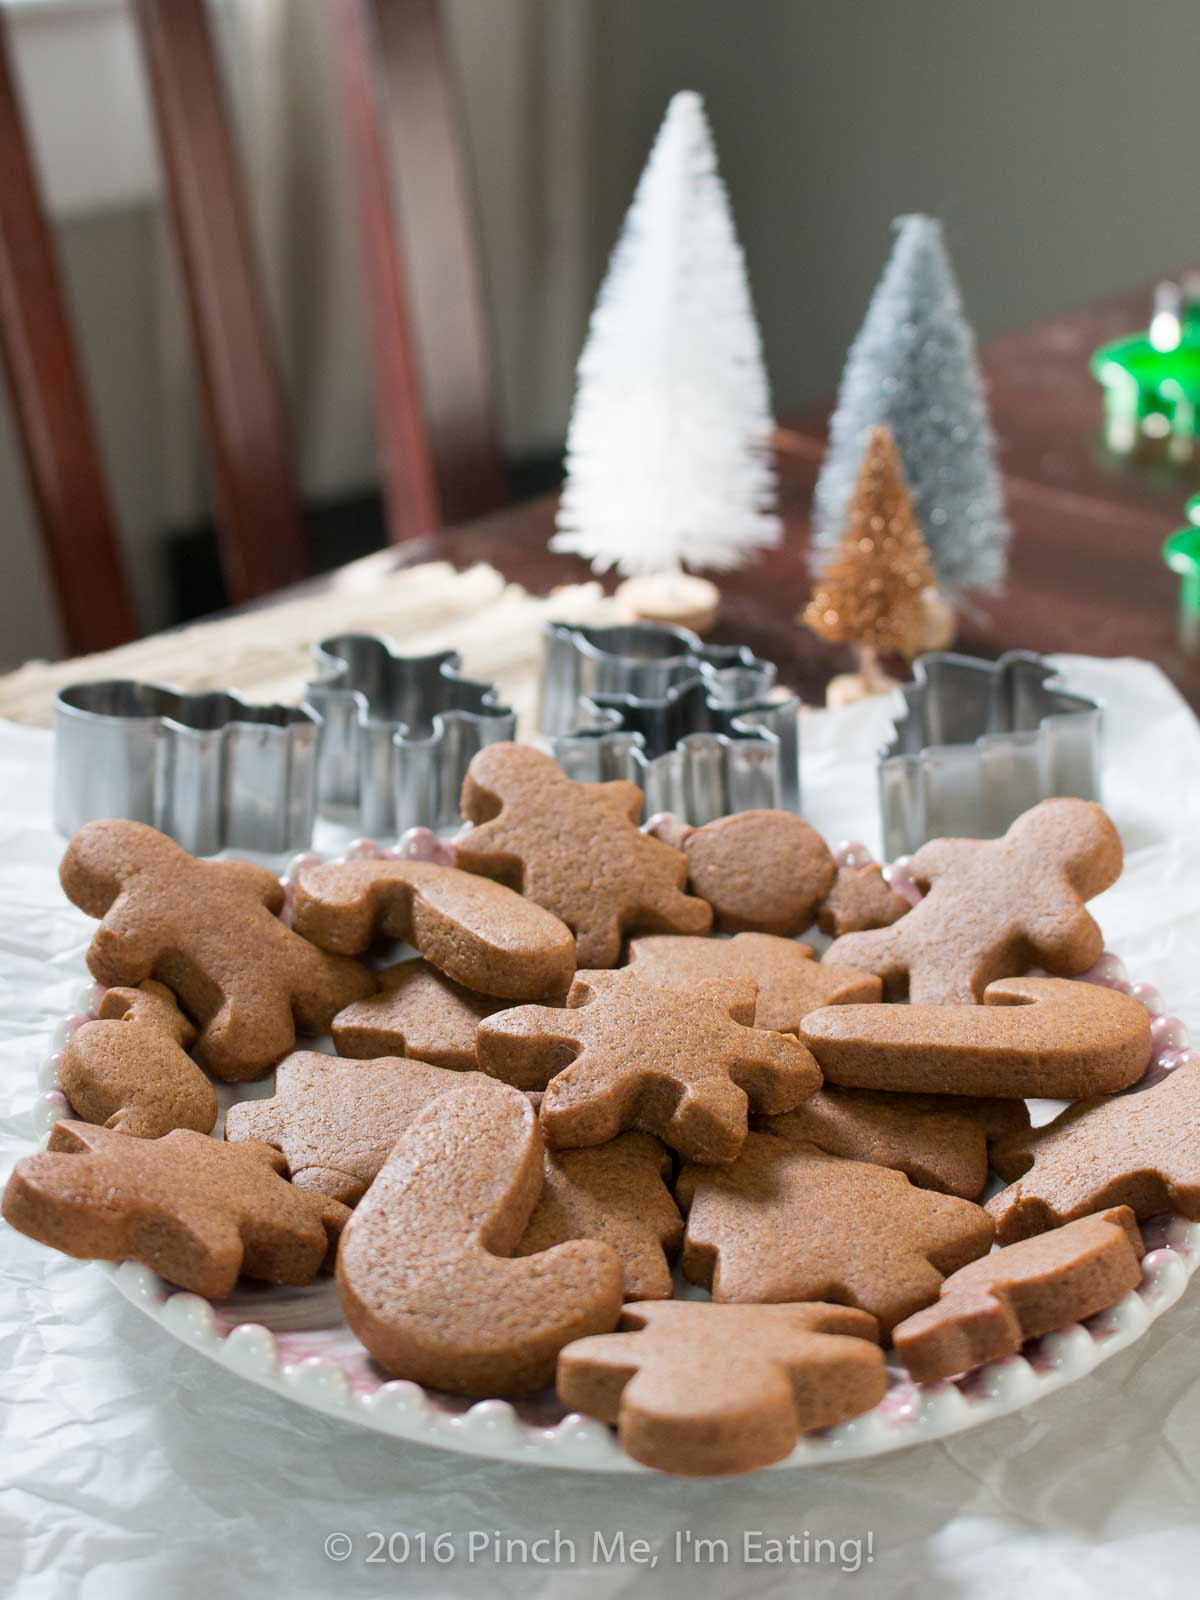 Chewy gingerbread cookies arranged on a plate with cookie cutters and Christmas trees in background